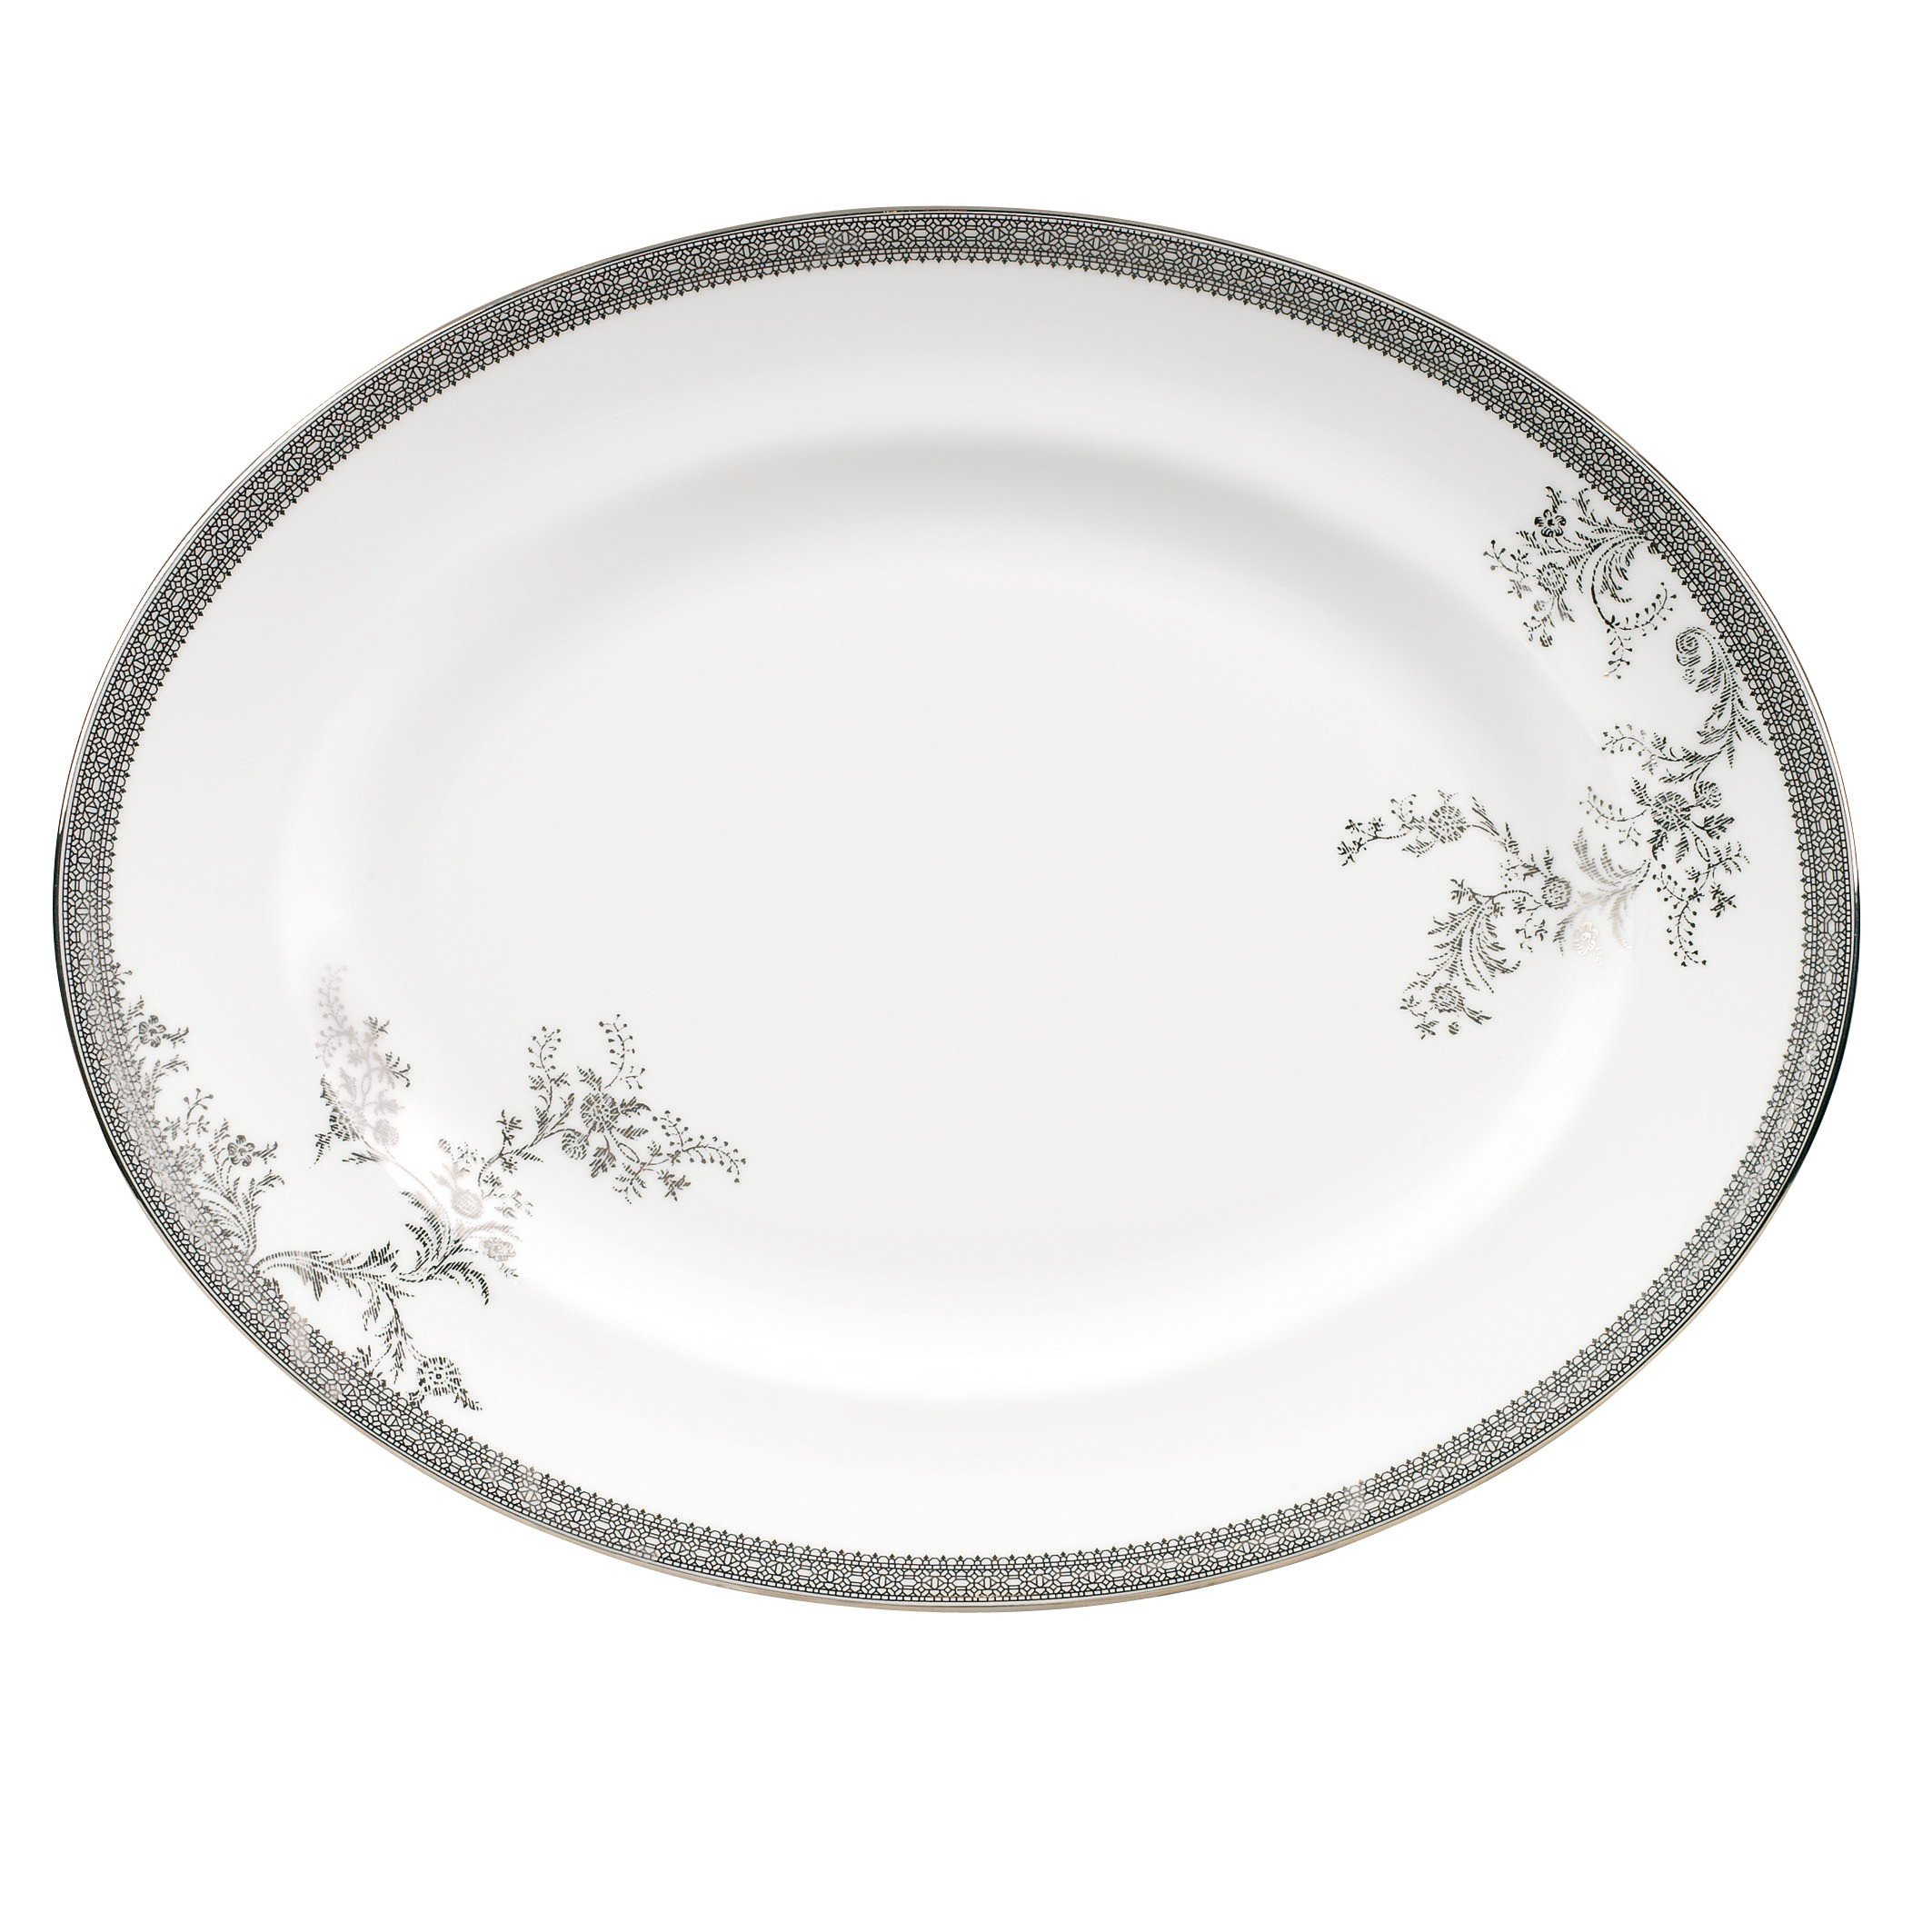 Wedgwood Vera Wang Vera Lace Gold 9-Inch Accent Salad Plate